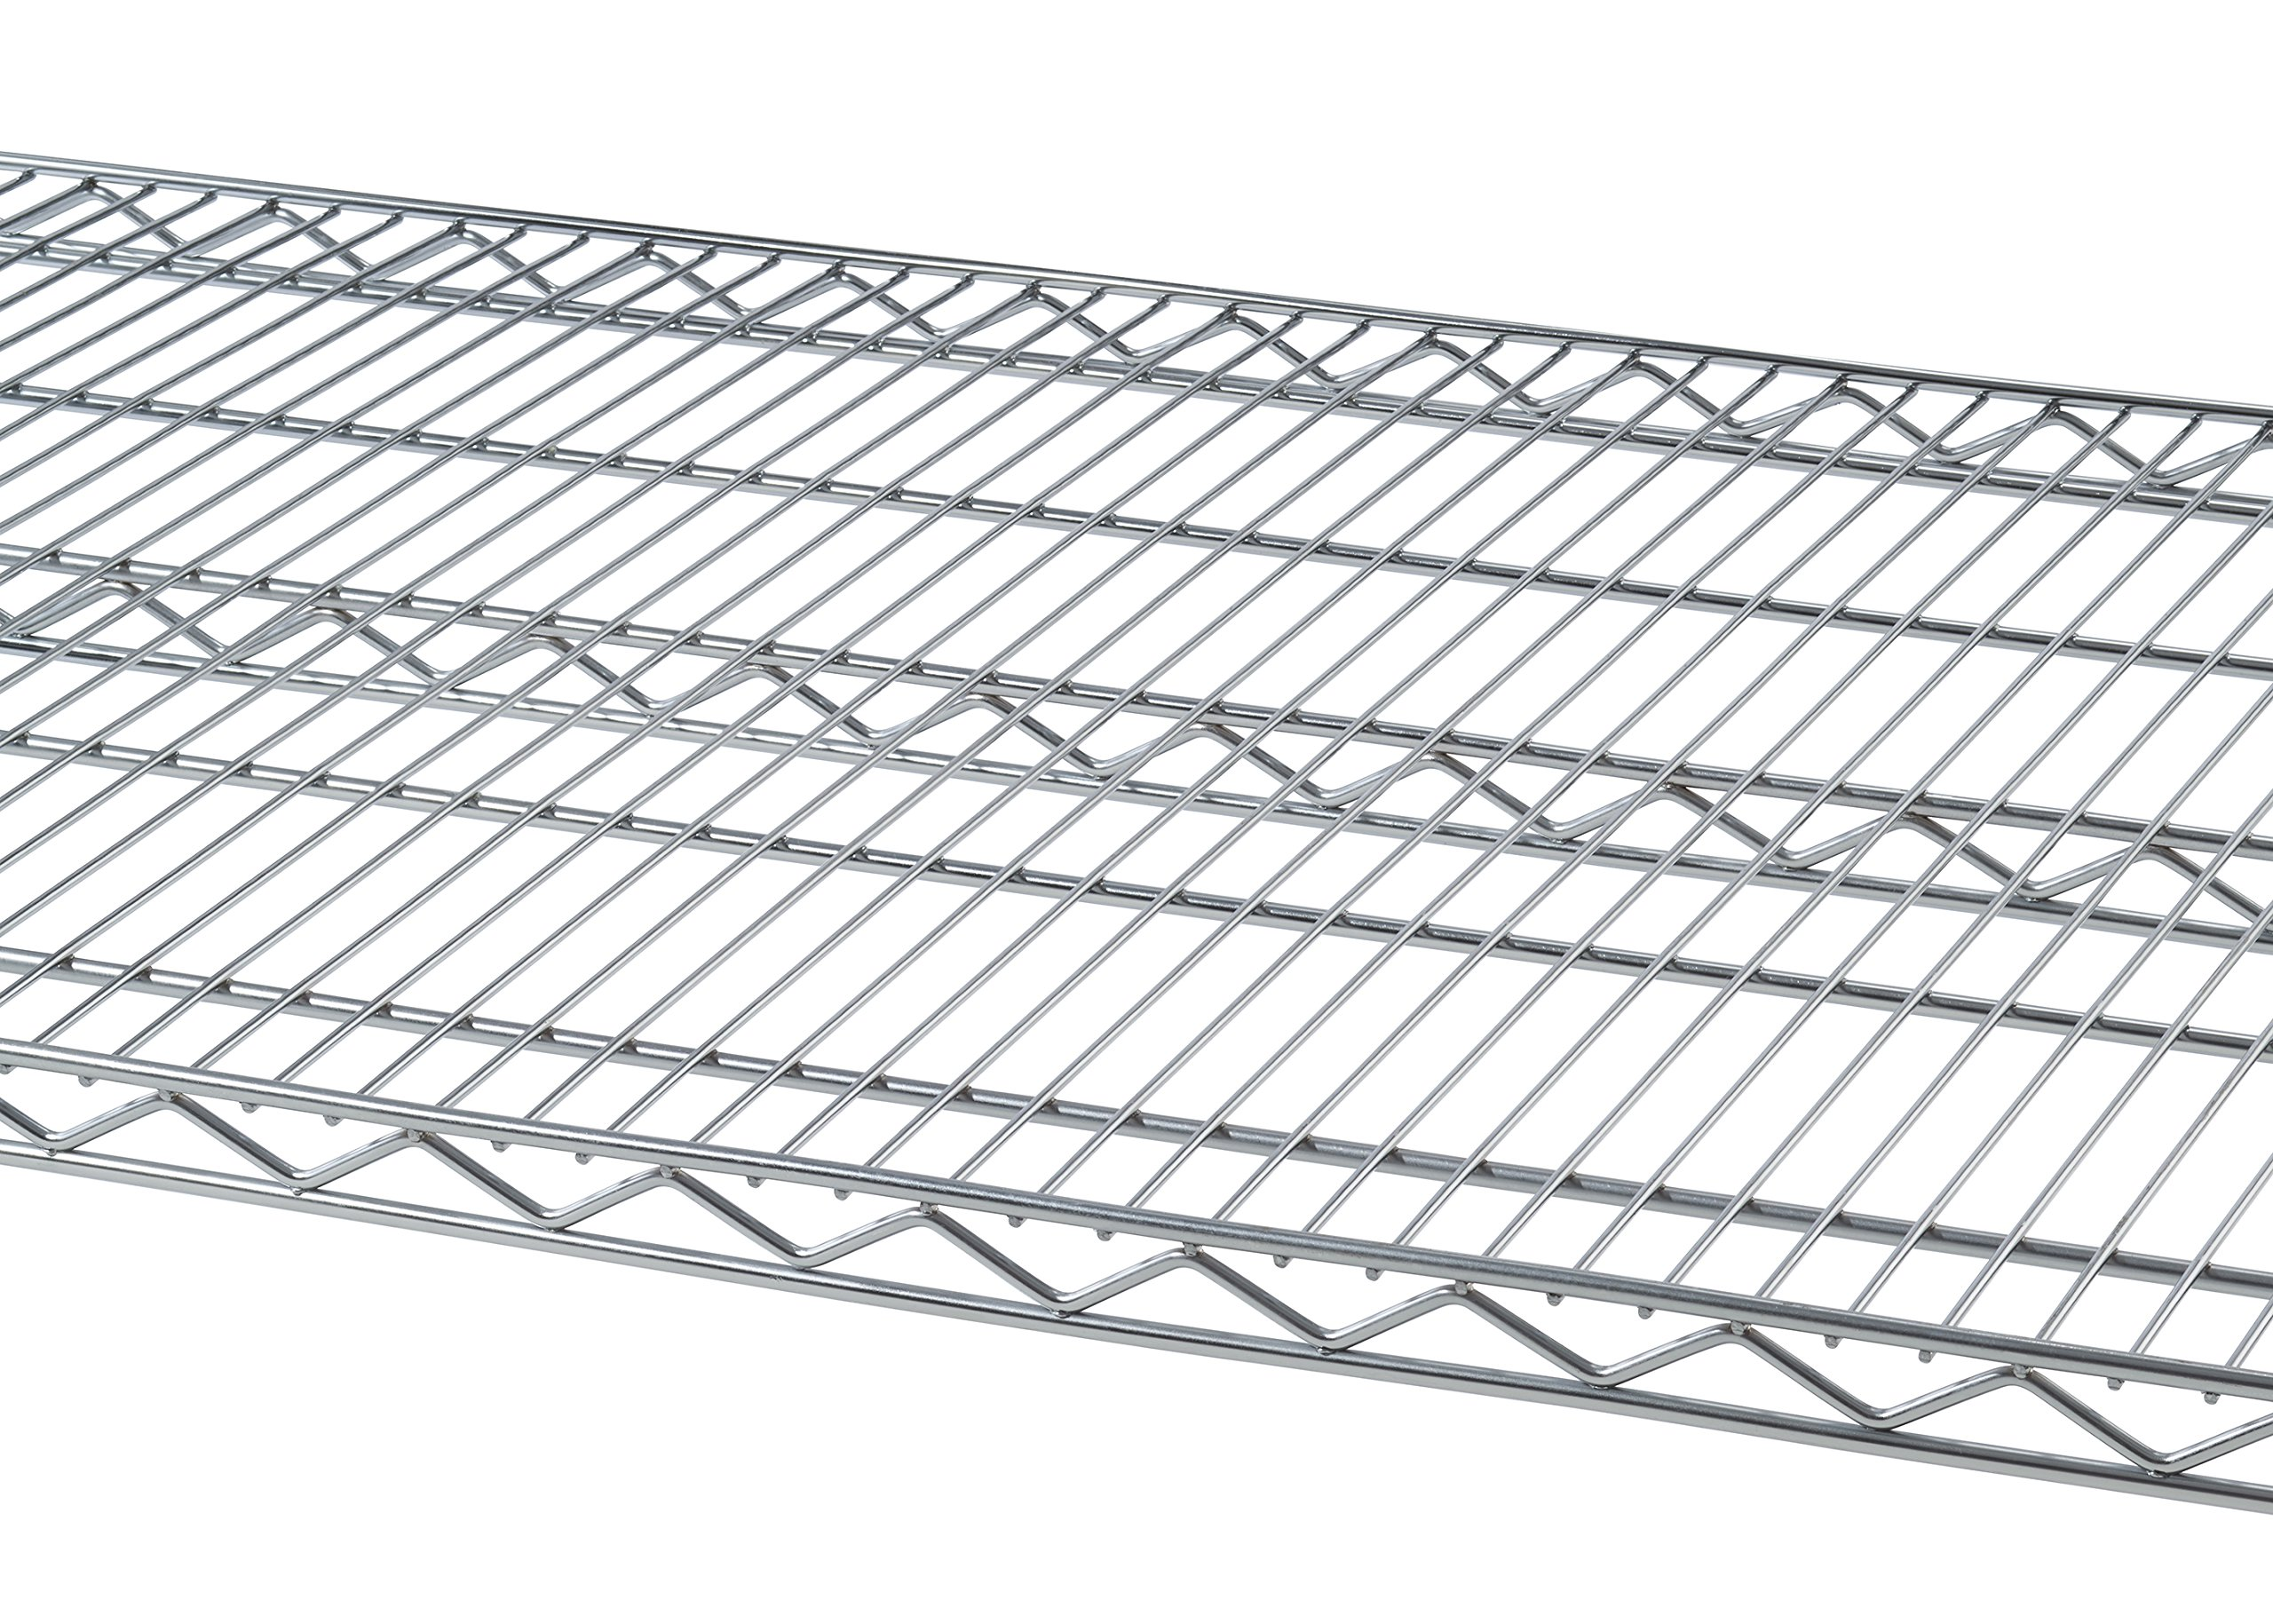 TRINITY 5-Tier NSF Heavy Duty X-Large Wire Shelving Rack with Wheels, 60 by 24 by 72-Inch, Chrome by Trinity (Image #5)